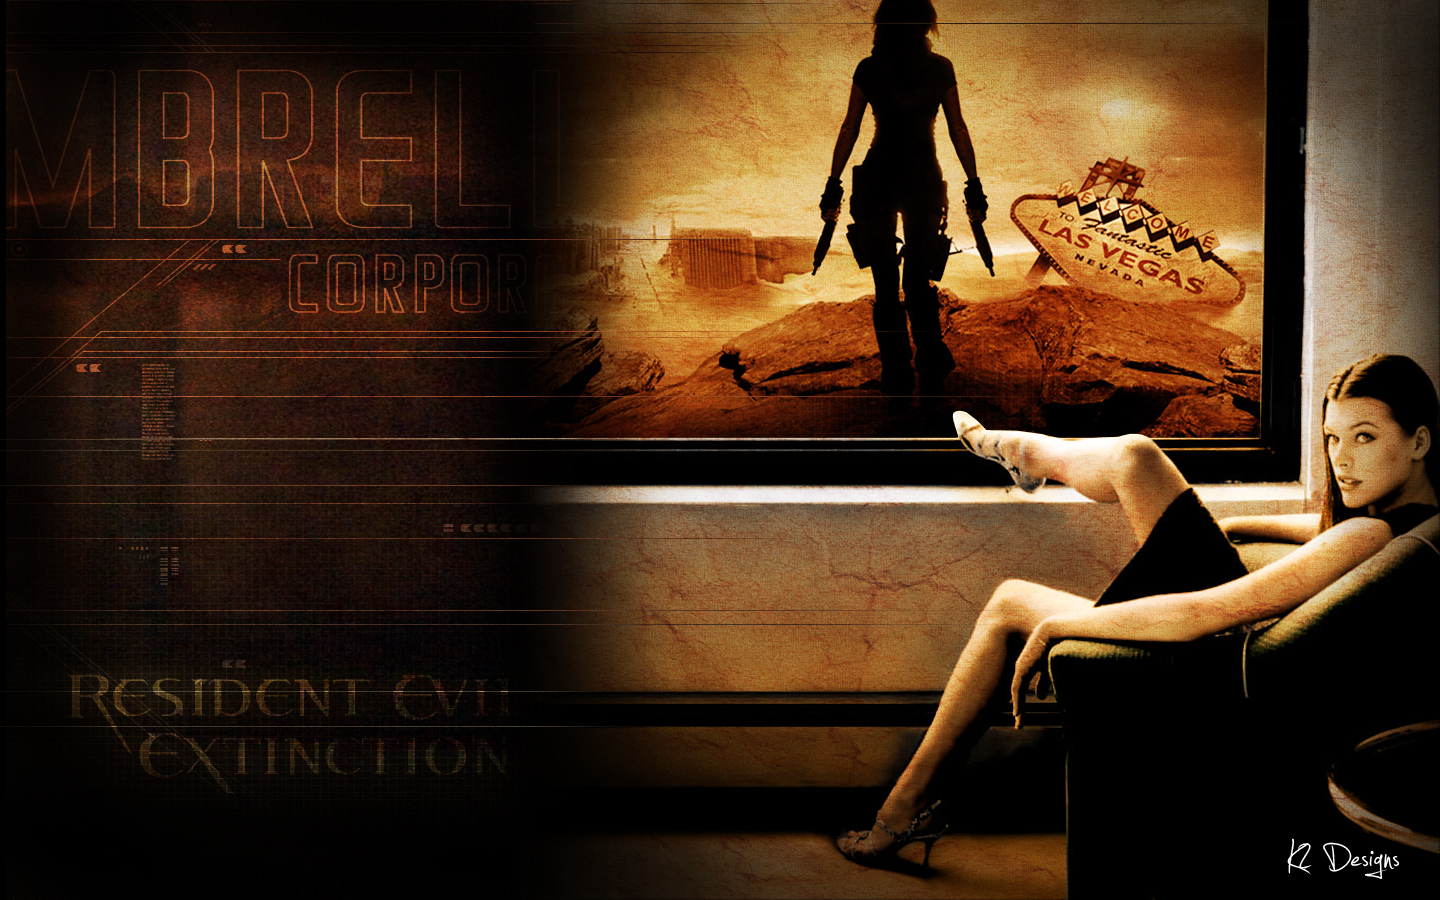 Resident Evil: Extinction Movie Wallpapers  WallpapersInk Resident Evil: The Final Chapter Movie Wallpapers  WallpapersInk Resident Evil Movie images Alice HD wallpaper and background 1440x900